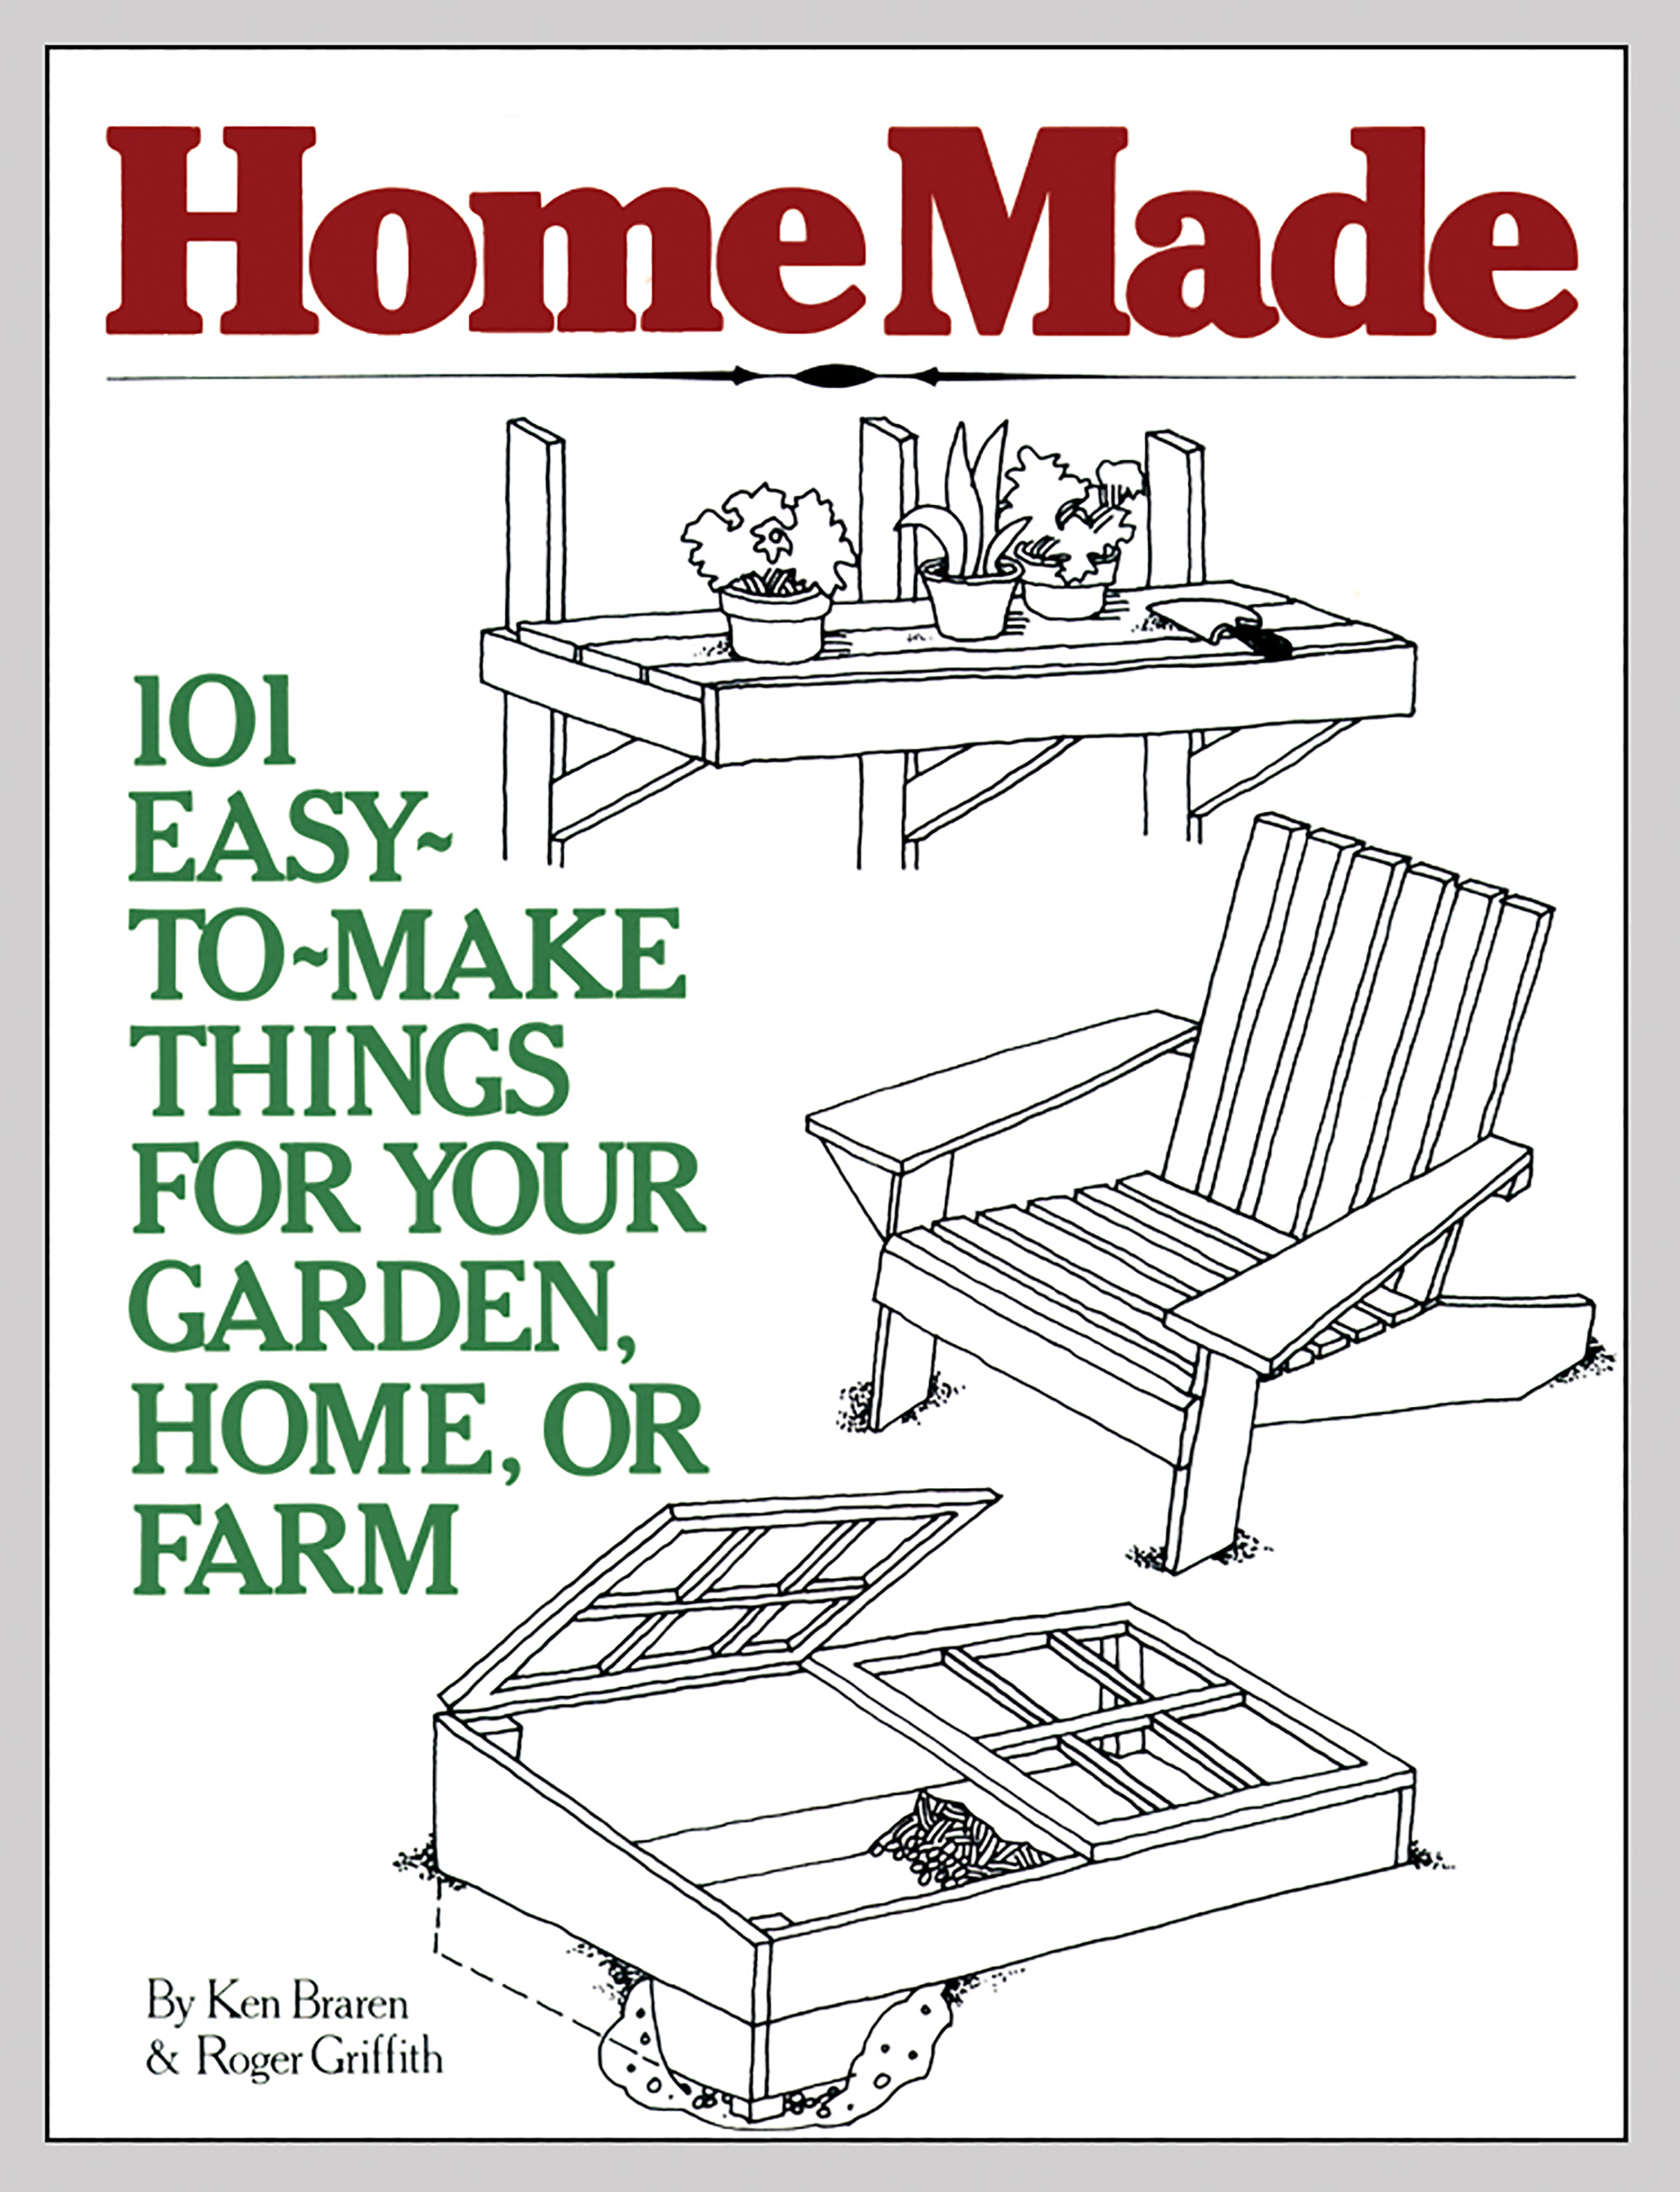 HomeMade 101 Easy-to-Make Things for Your Garden, Home, or Farm